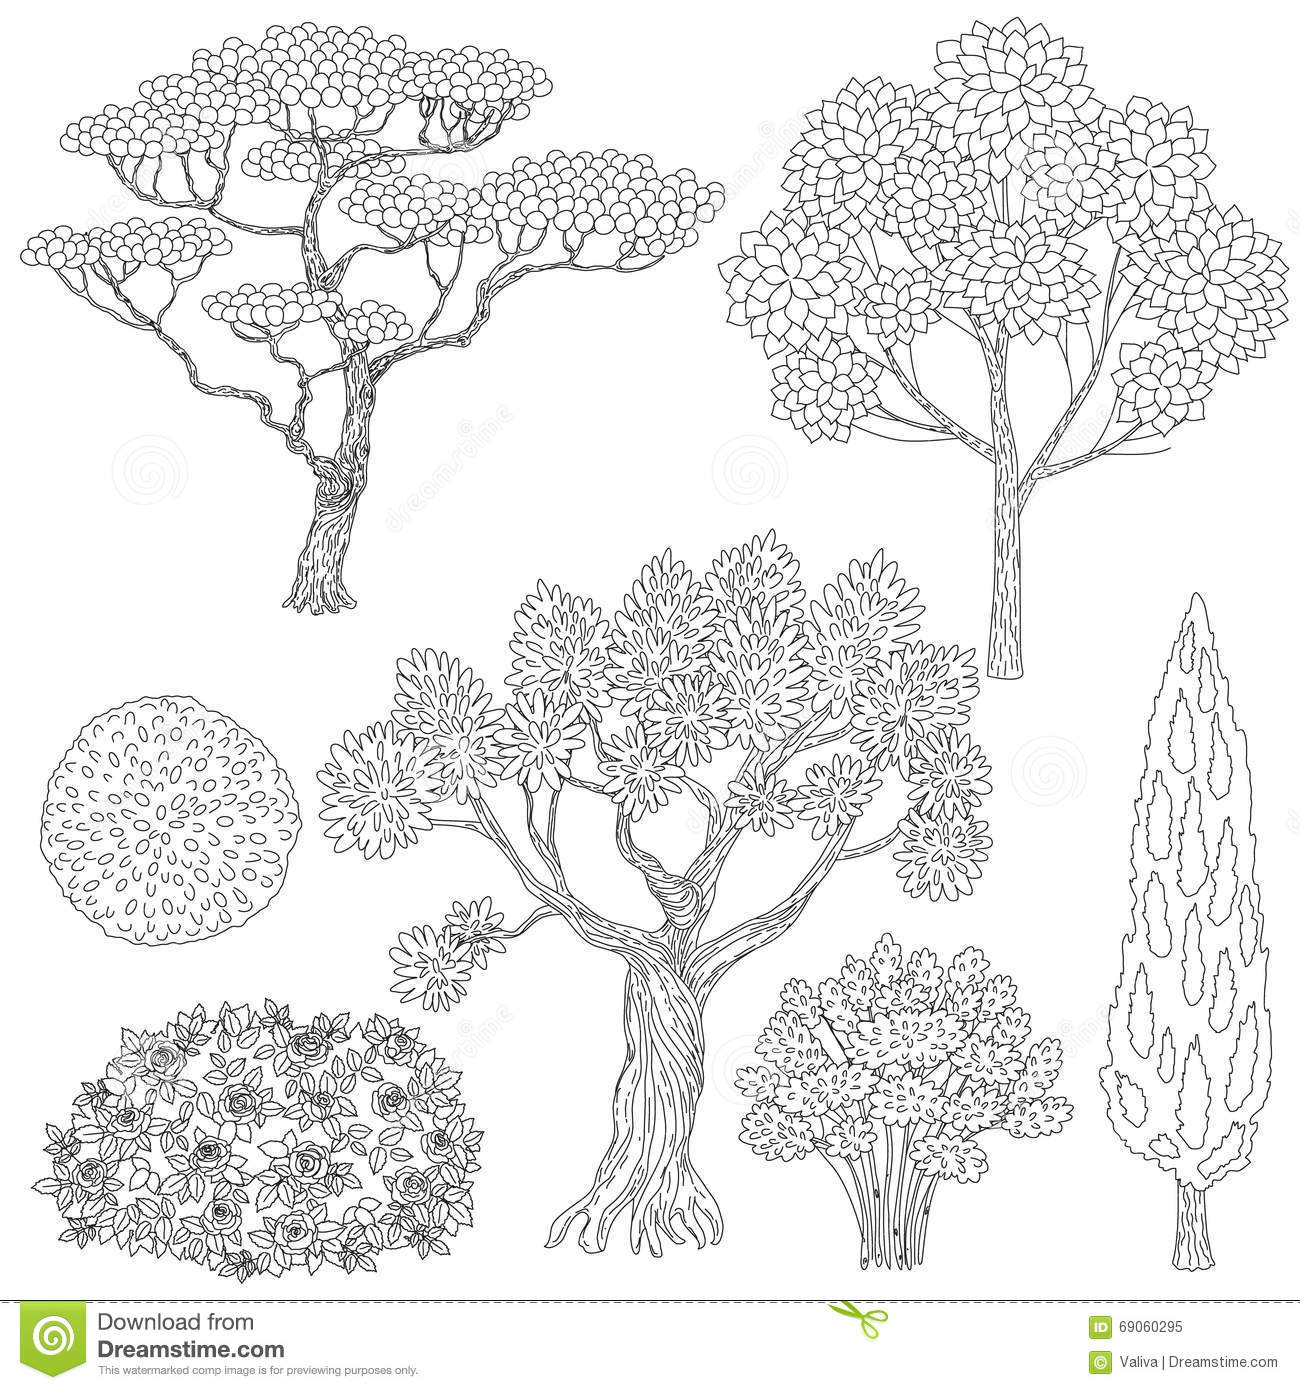 Black And White Outlines Trees And Bushes. Stock Vector.